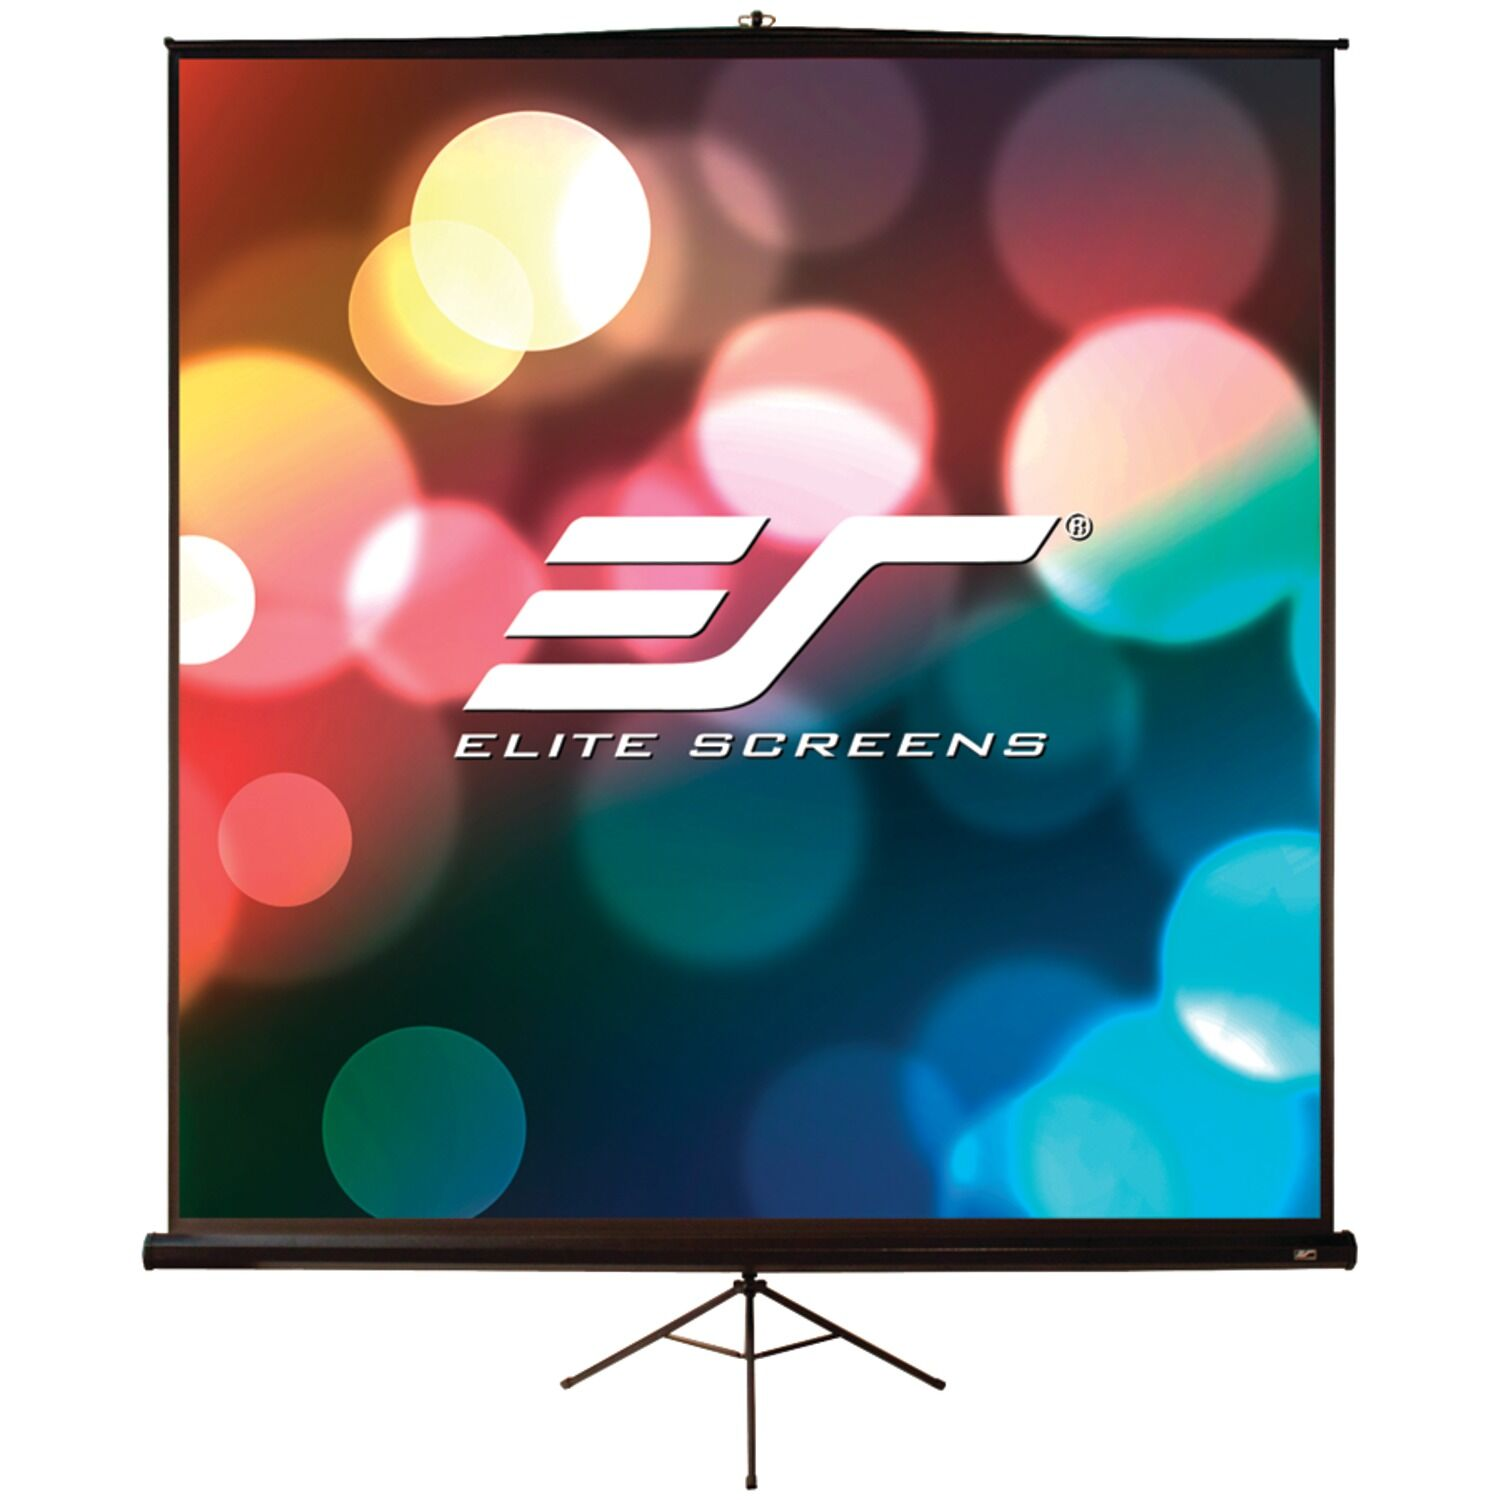 Tripod Pro Series Portable Projection Screen Viewing Area: 70